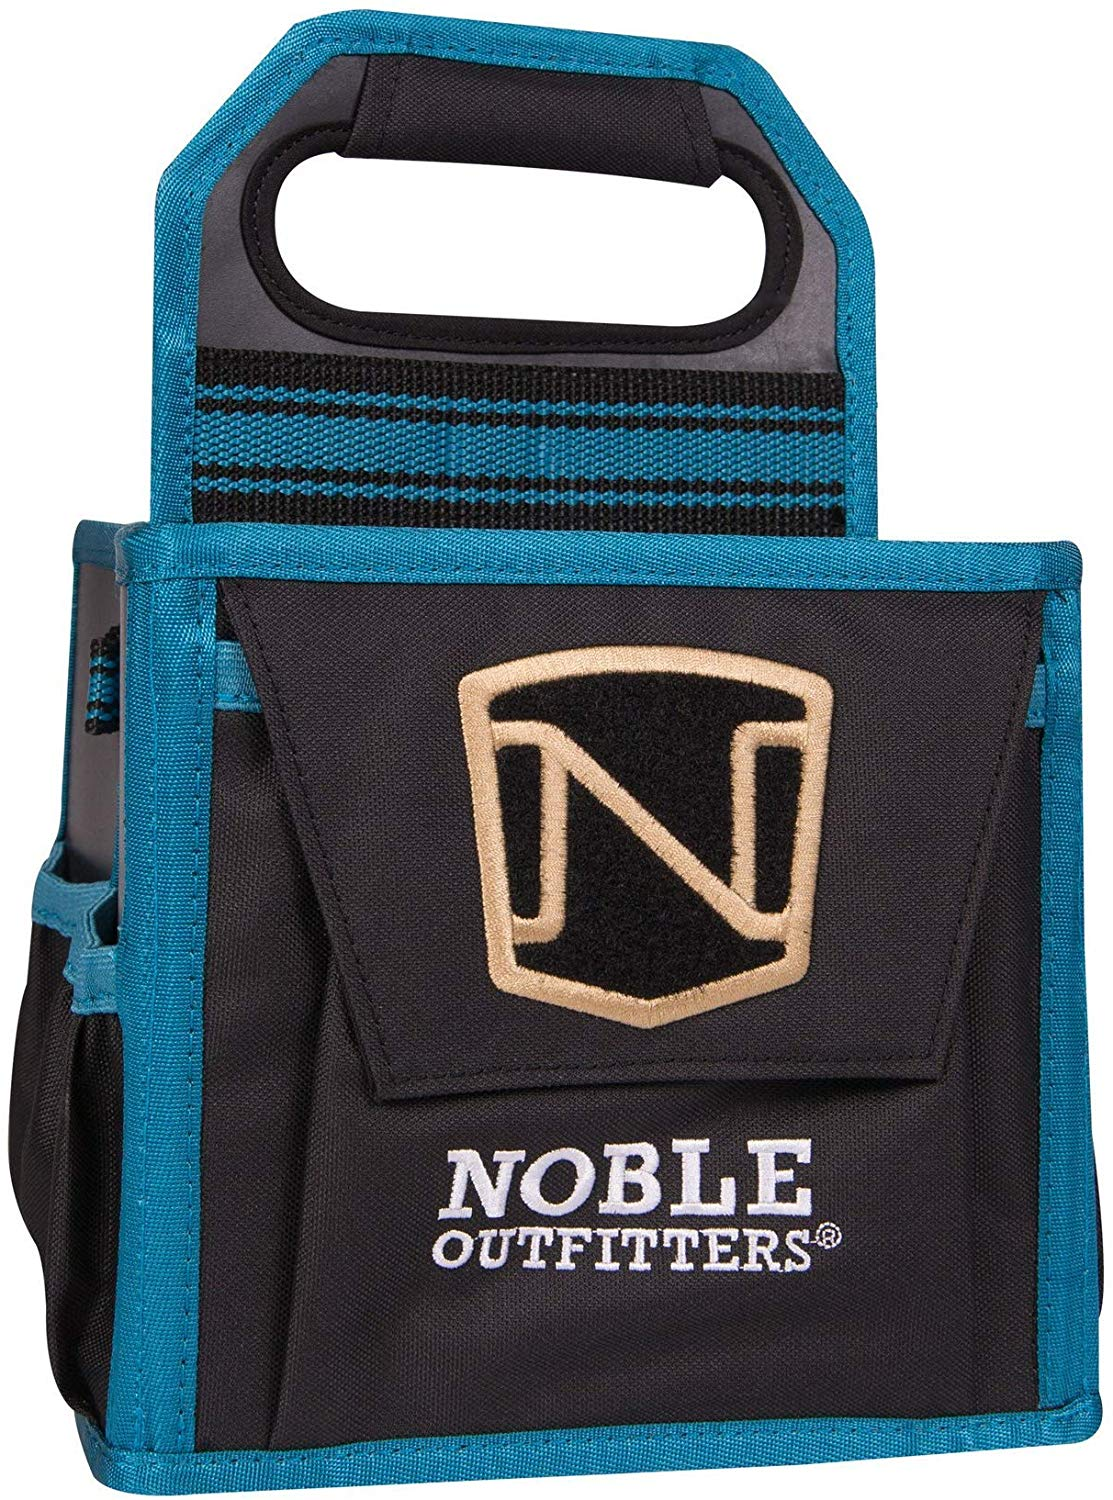 Noble Outfitters Mini Equinessential Tote -SALE - North Shore Saddlery